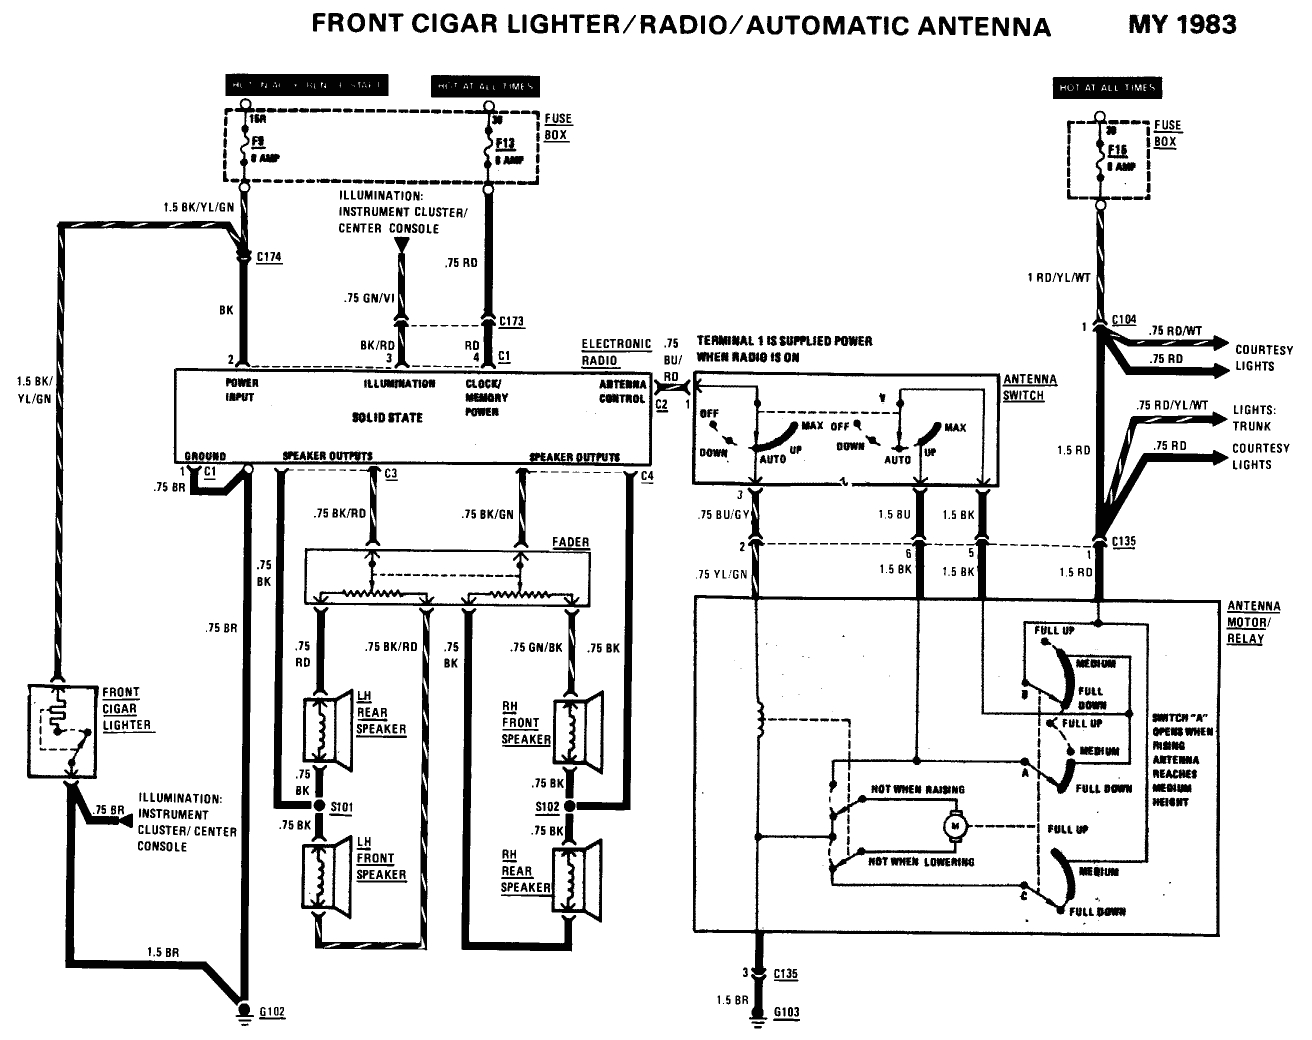 wiring diagram a antenna switch question for euro without power antenna